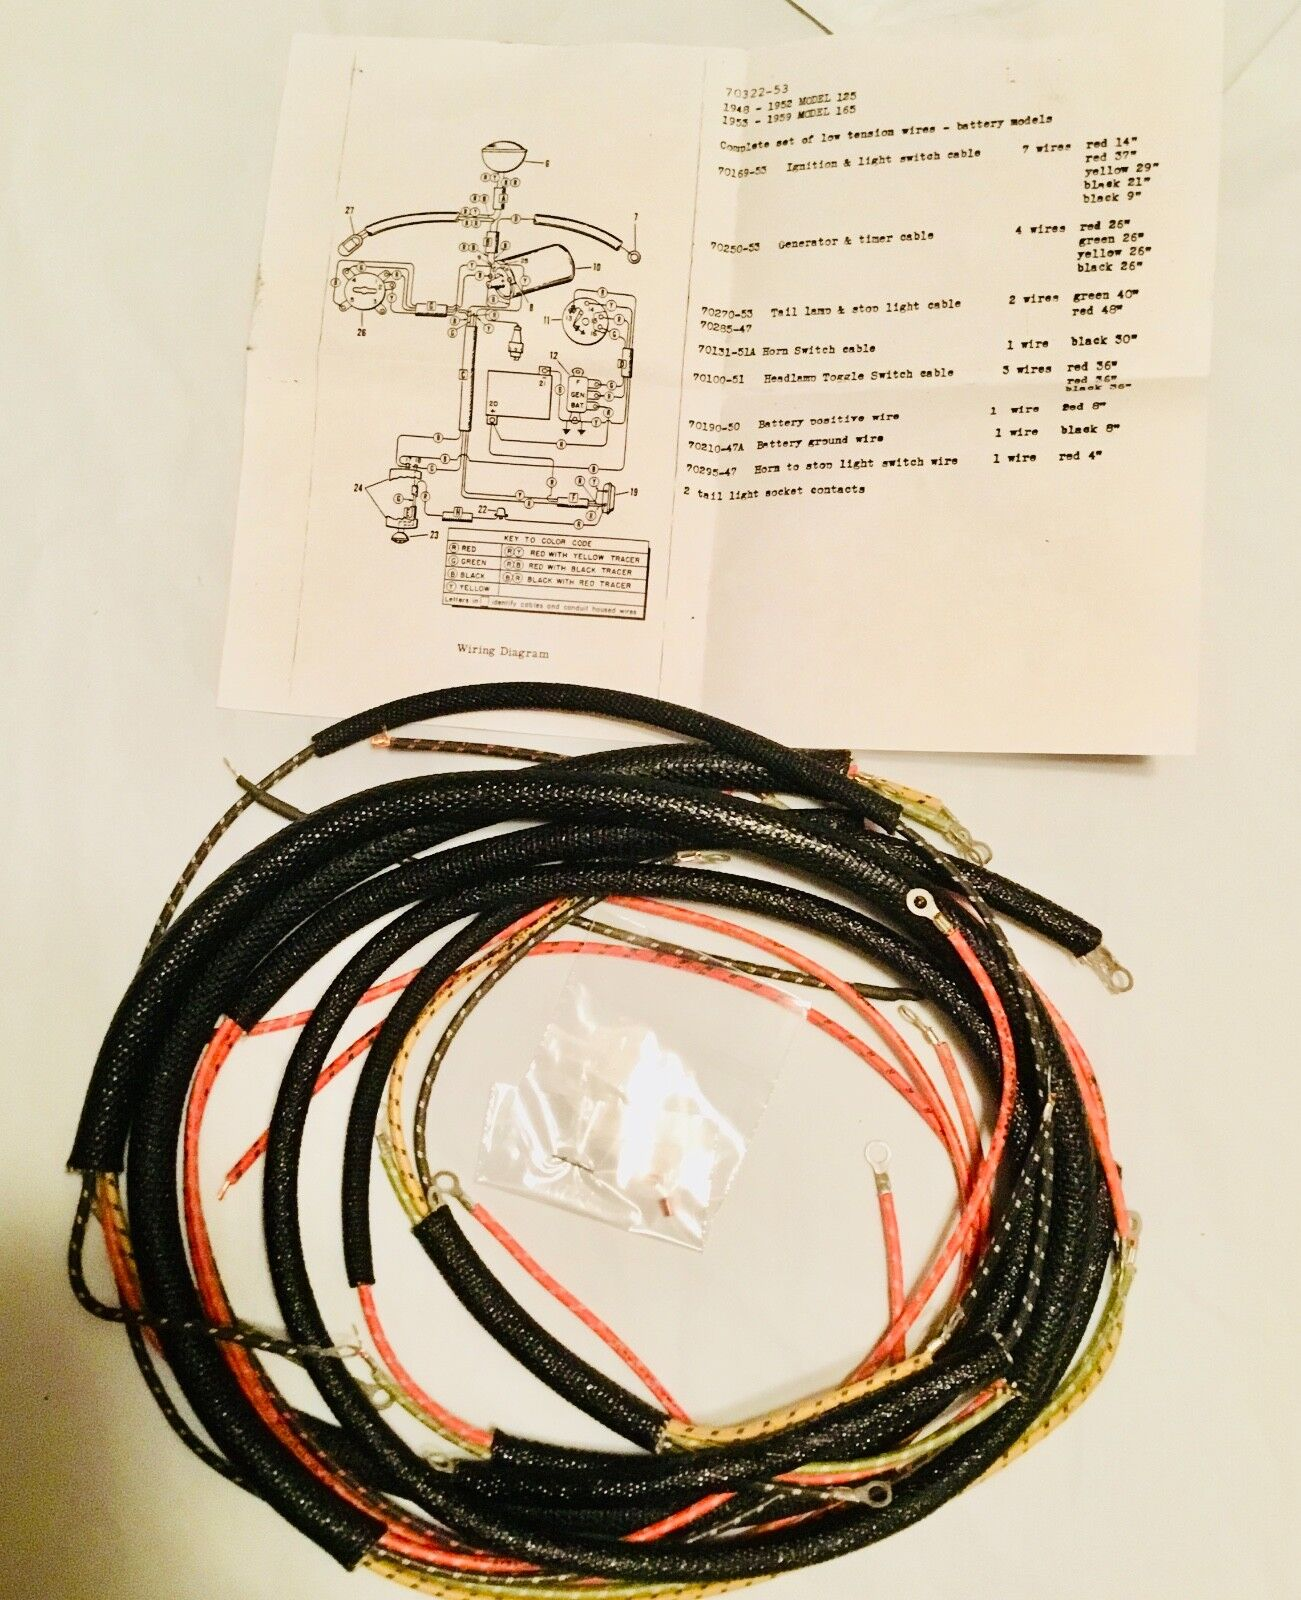 buick stereo wire harness 1948 buick wire harness harley 70322-53 complete hummer 1948-59 wiring harness ...